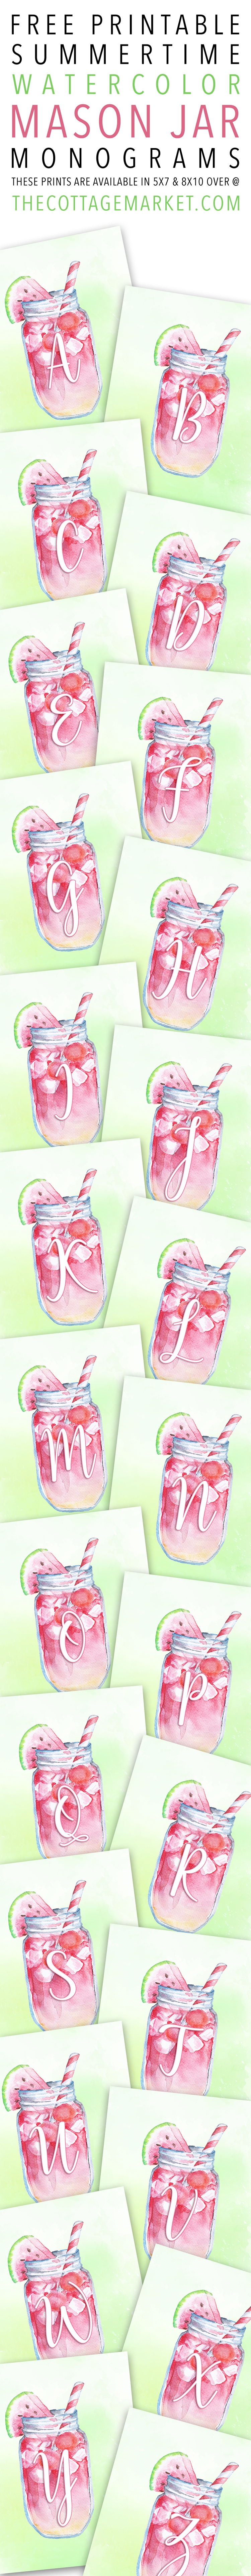 Free Printable Summertime Watercolor Mason Jar Monograms The Cottage Market